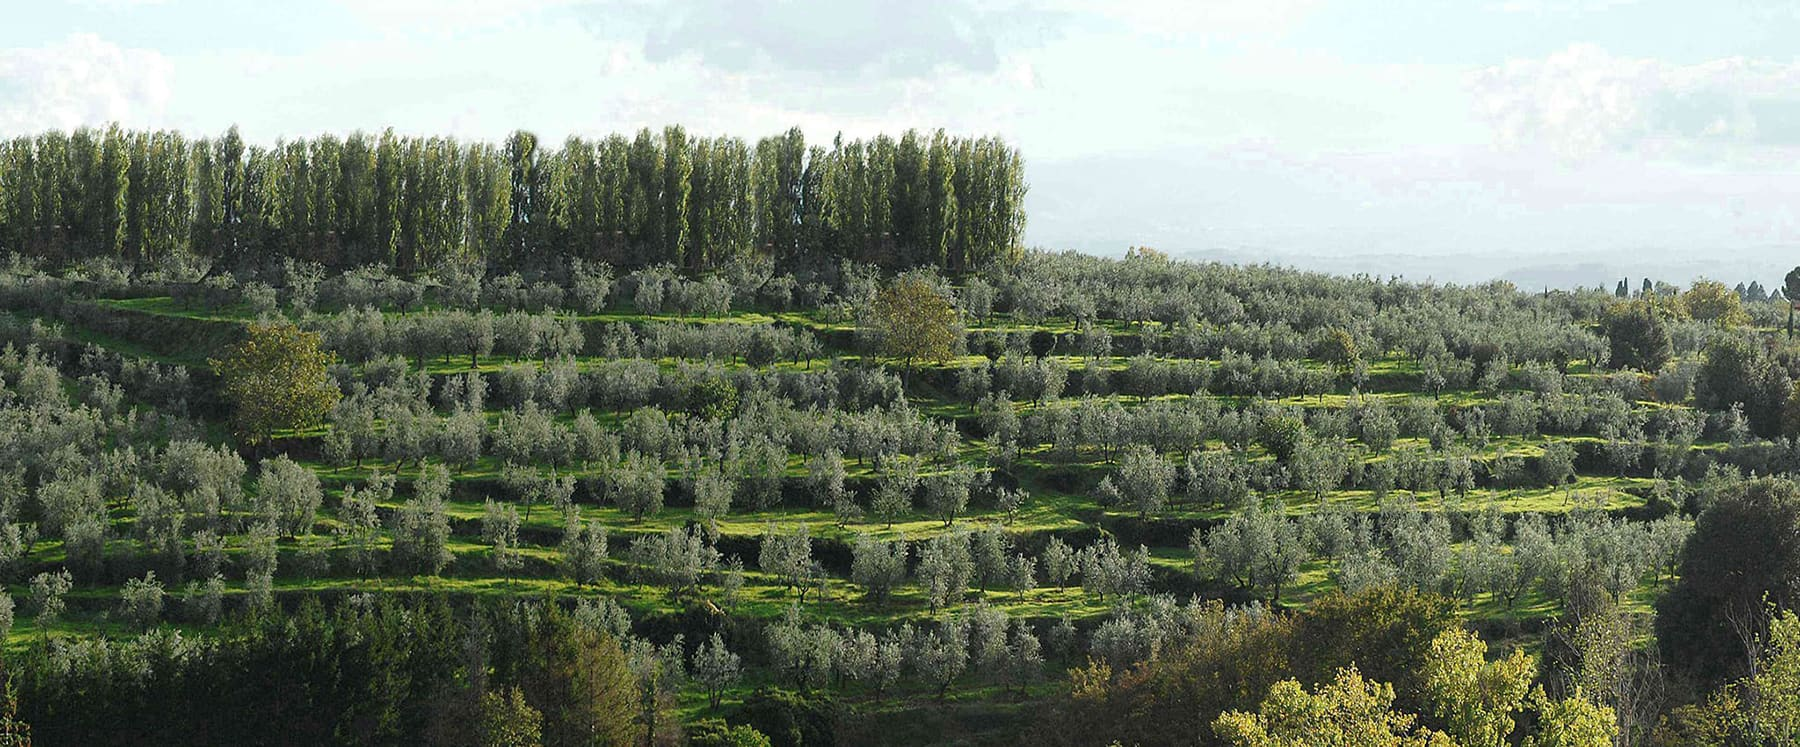 The Olive Groves of the Gonnelli 1585 farm | 43 000 olive plants